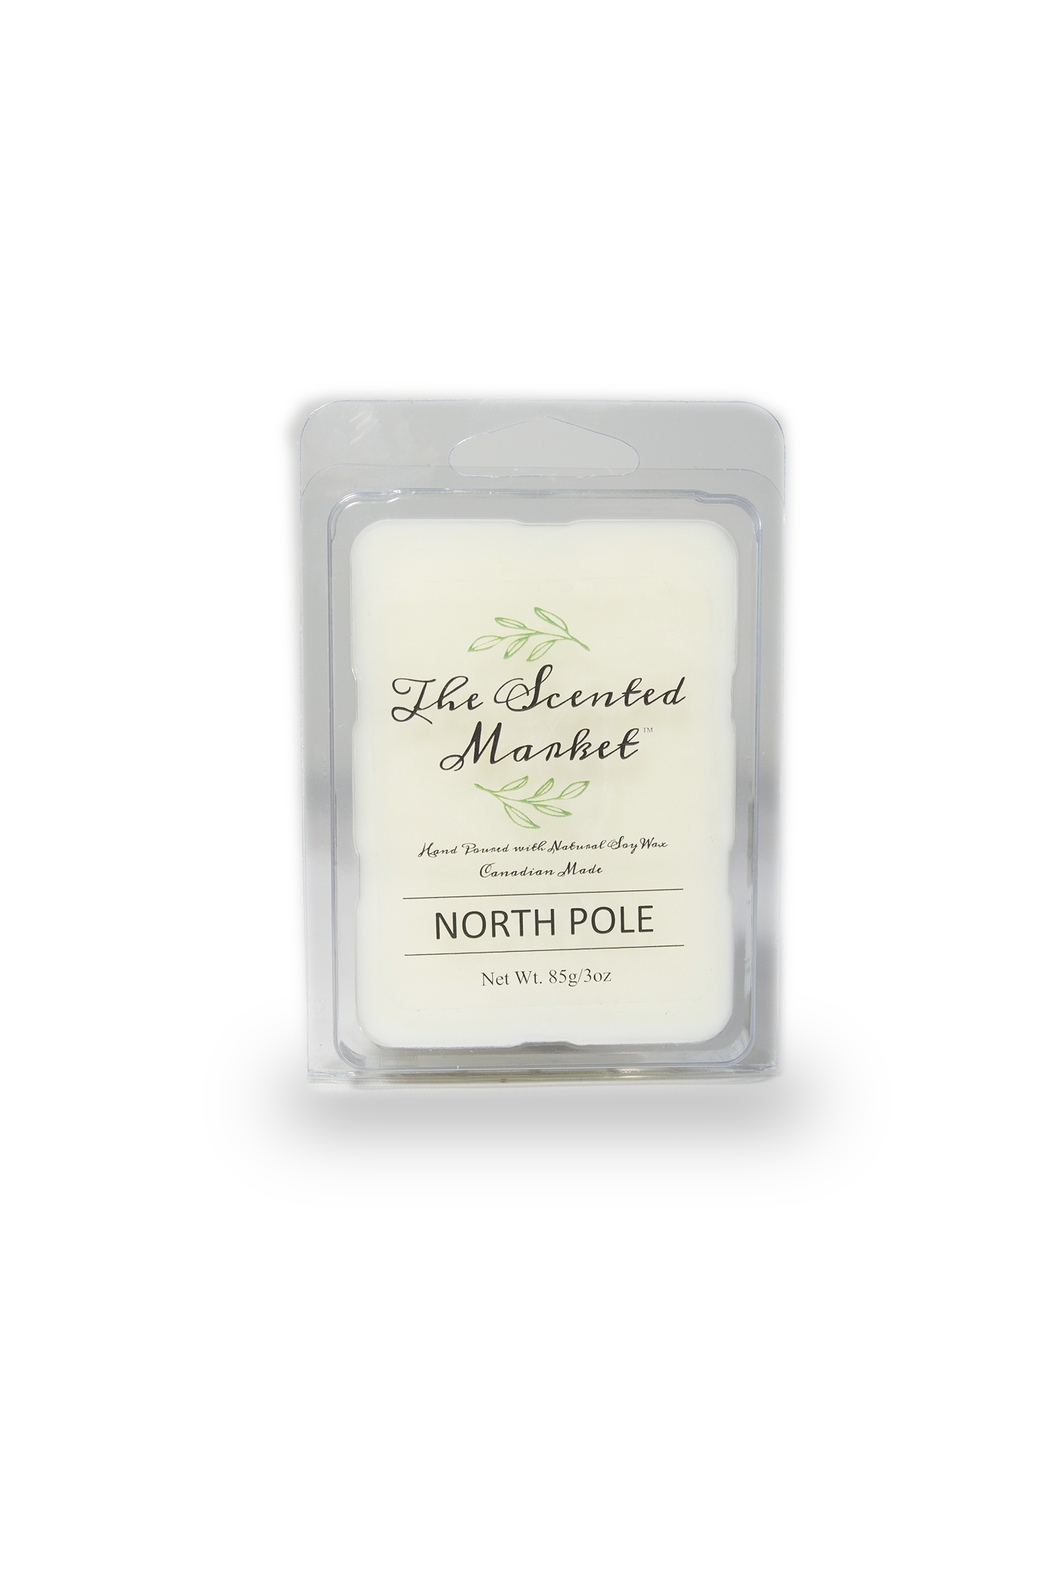 NORTH POLE SOY WAX MELT